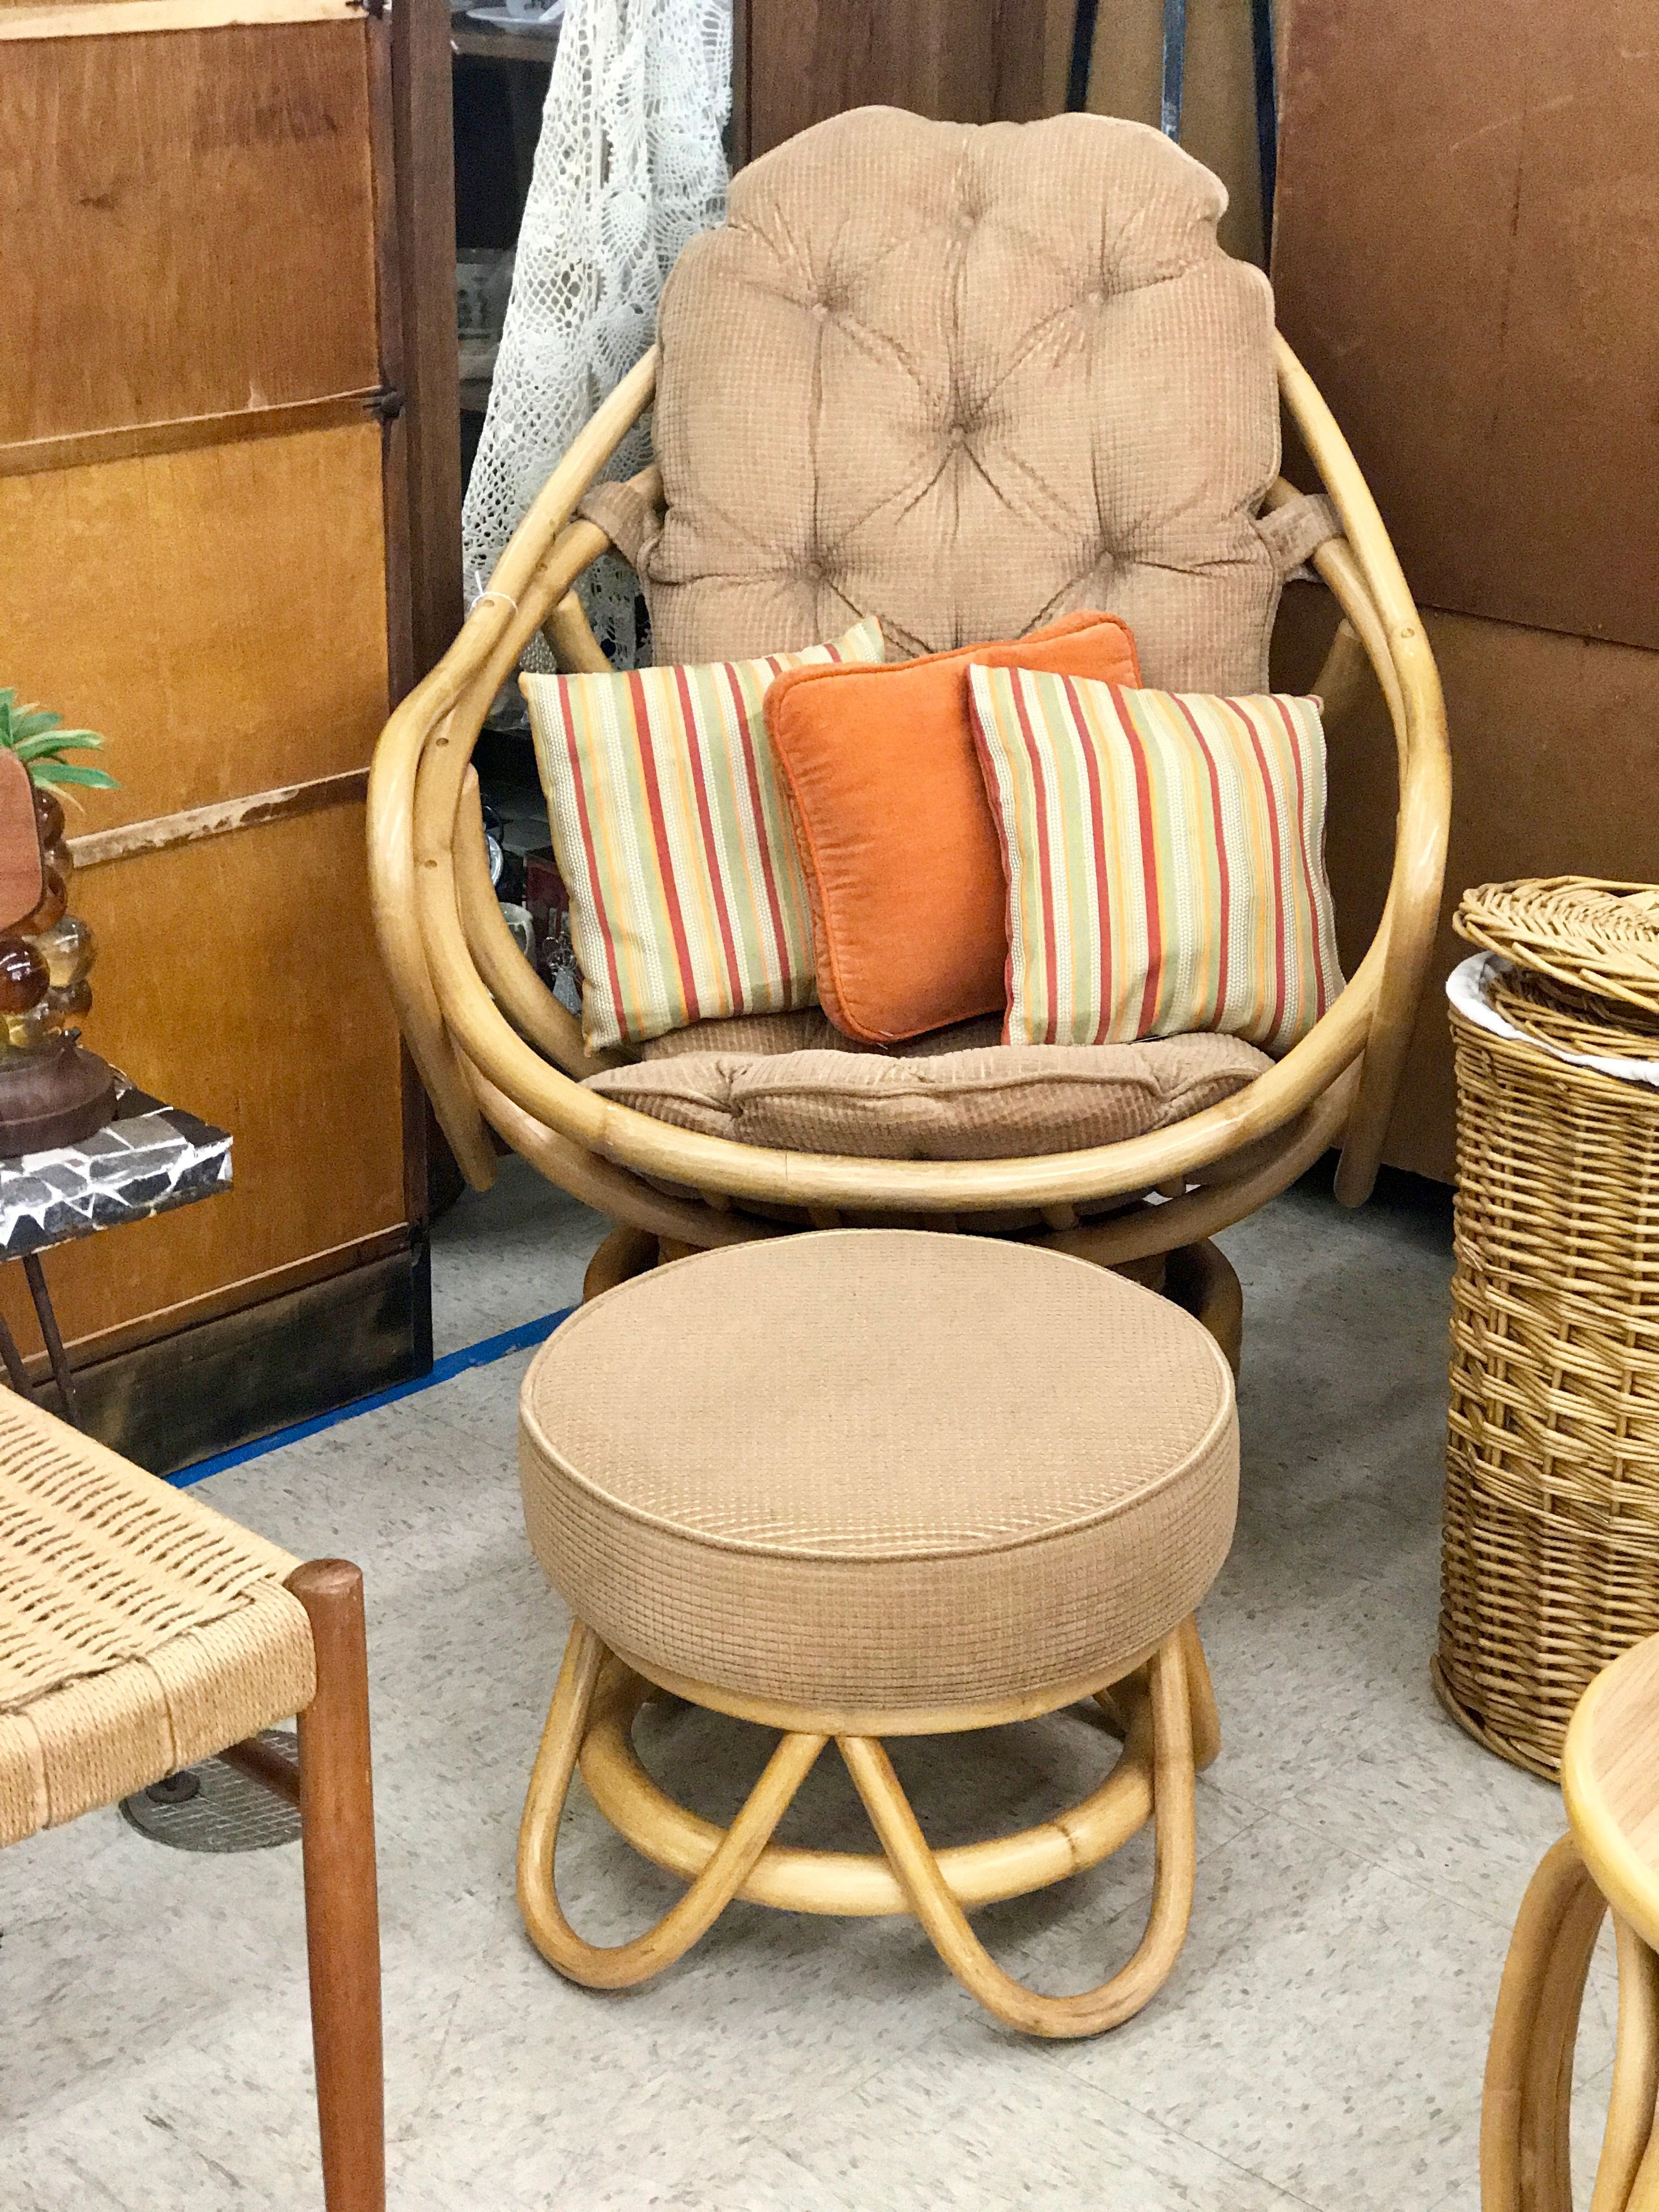 Bamboo Swivel Egg Chair Table and Ottoman $225 Dealer #81 Top Drawer Antiques u0026 & Bamboo Swivel Egg Chair Table and Ottoman $225 Dealer #81 Top ...